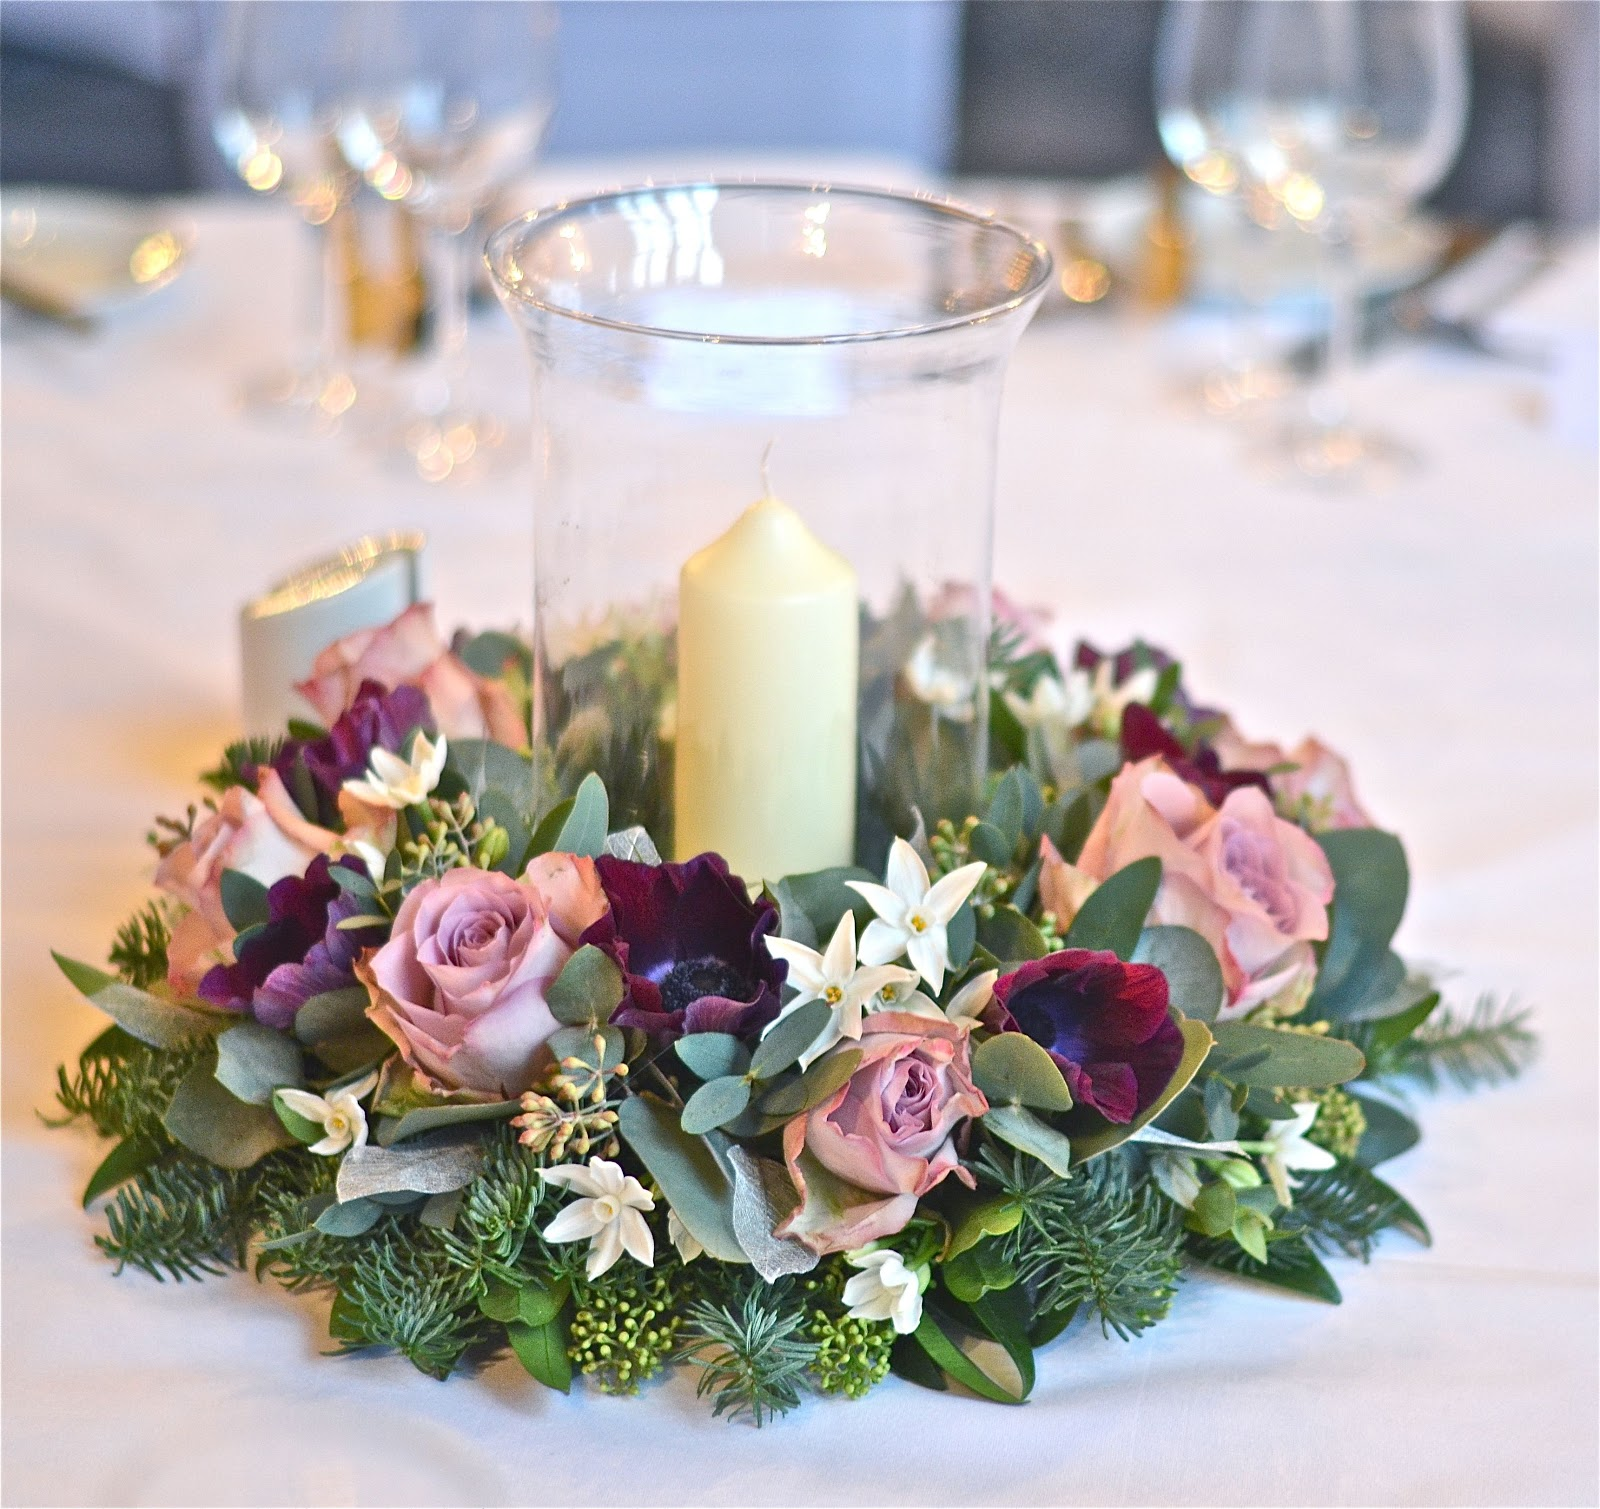 Wedding Flowers Blog December 2012